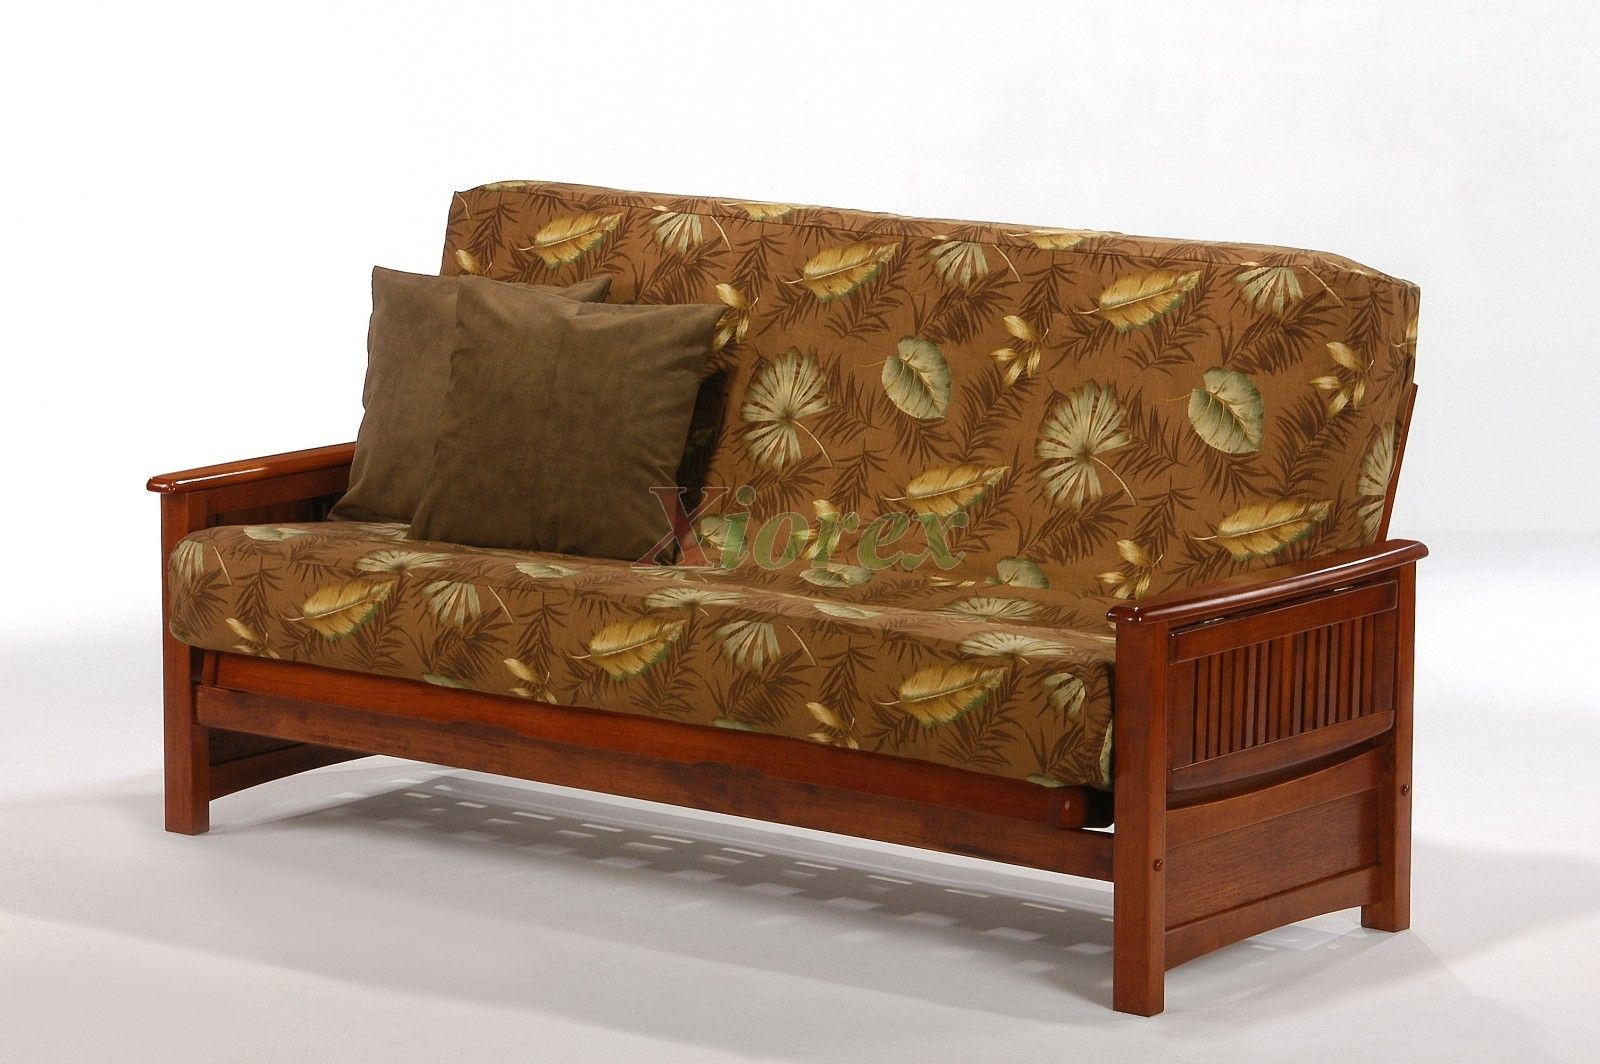 Cherry Futon Sunrise Smart Futons And Loungers By Night Xiorex Is A Wood